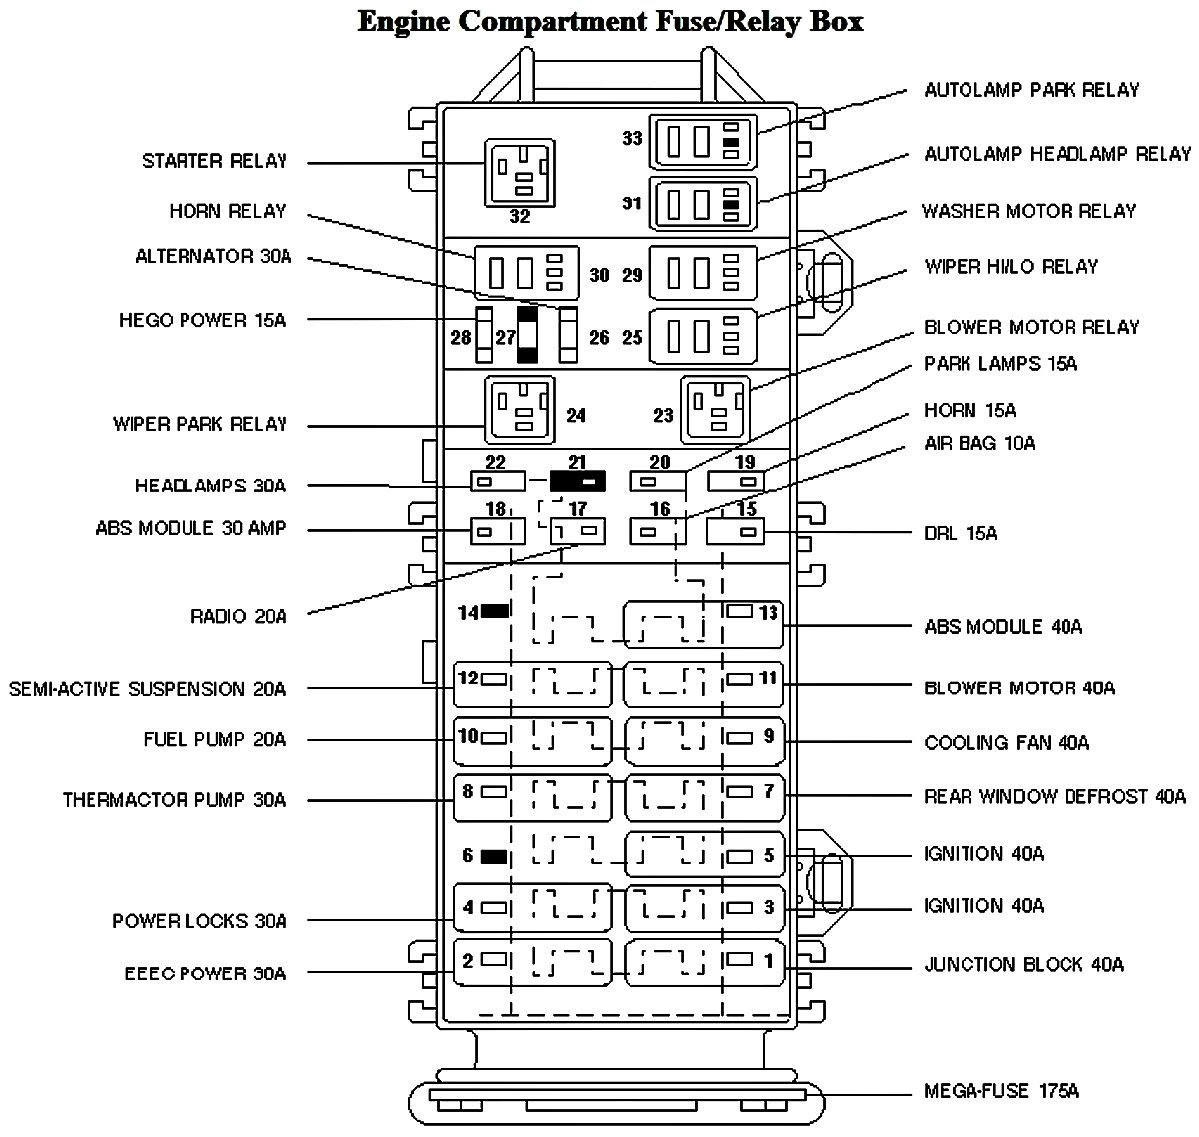 2004 Mercury Mountaineer Fuse Box Diagram